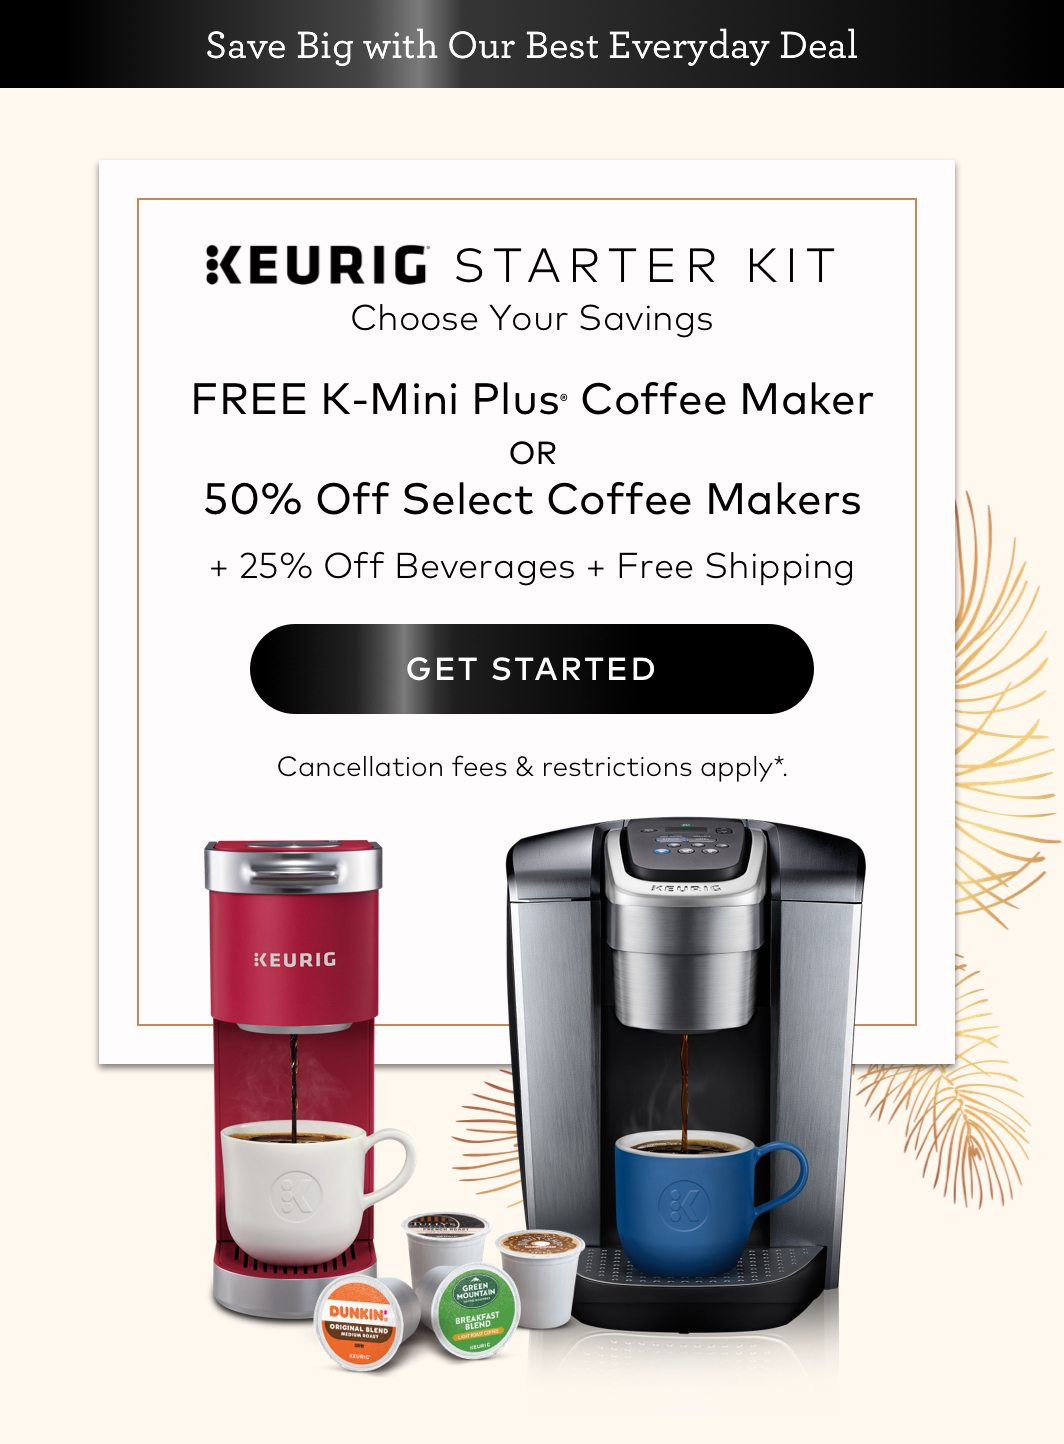 Keurig Starter Kit Savings